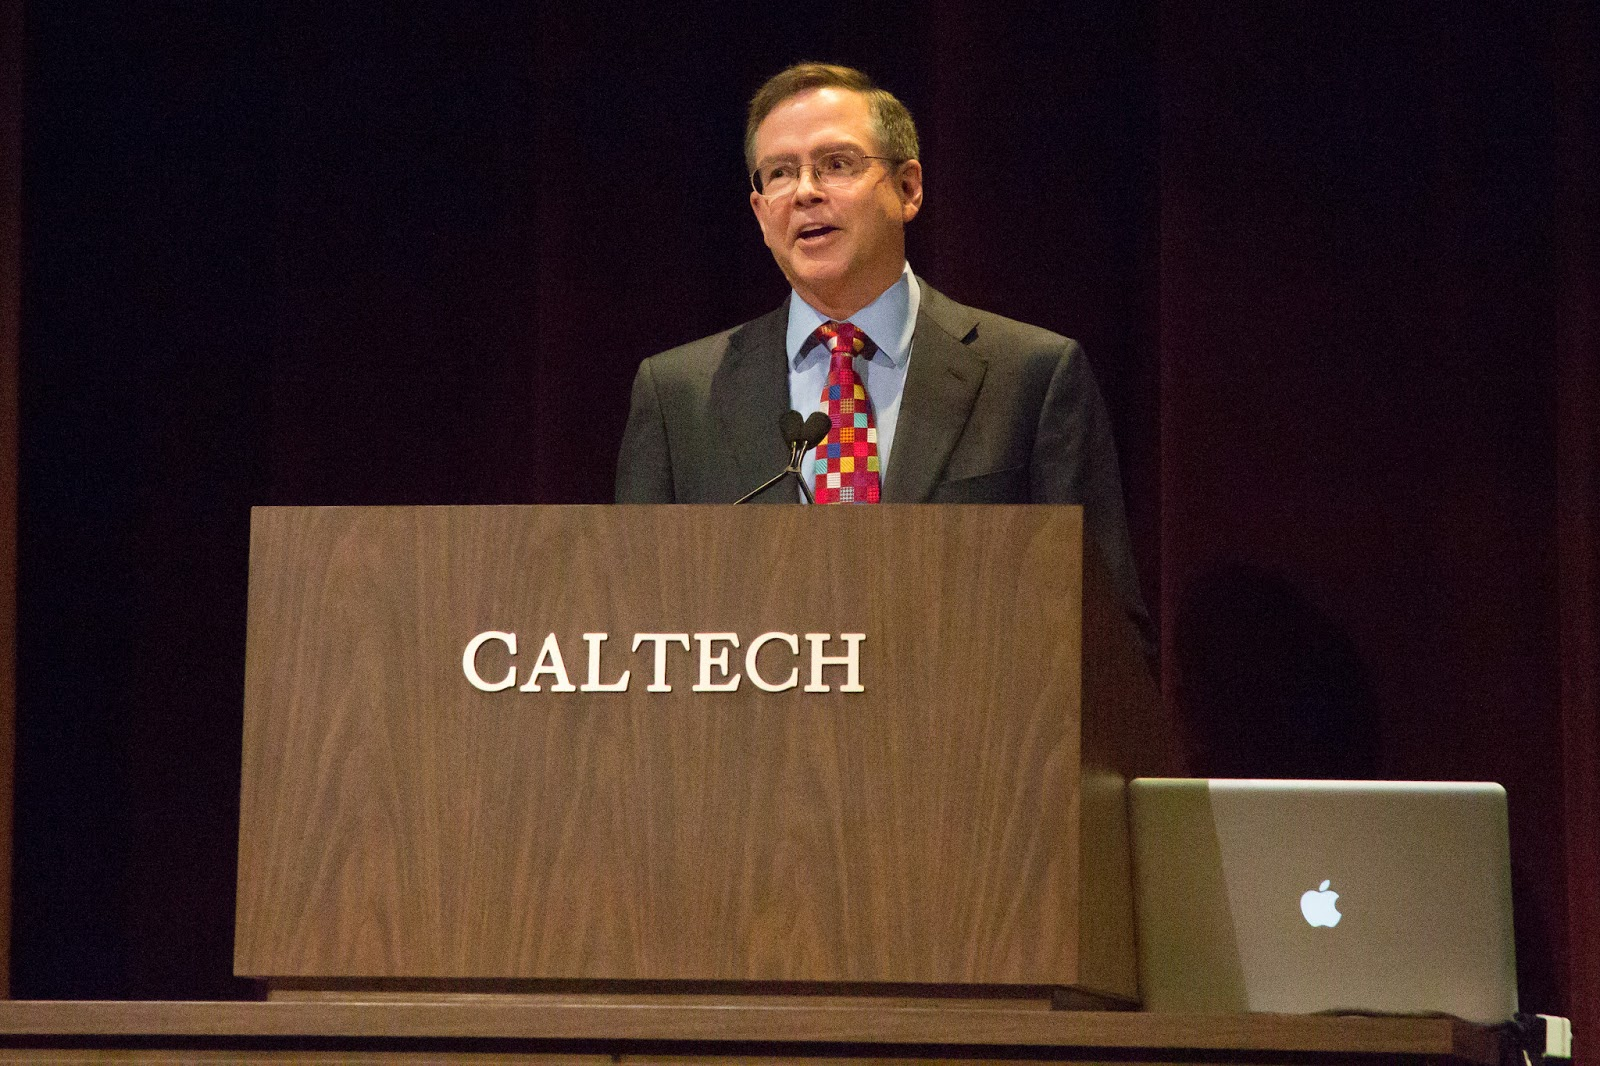 Jim in a suit behind a podium with the word Ccaltech""